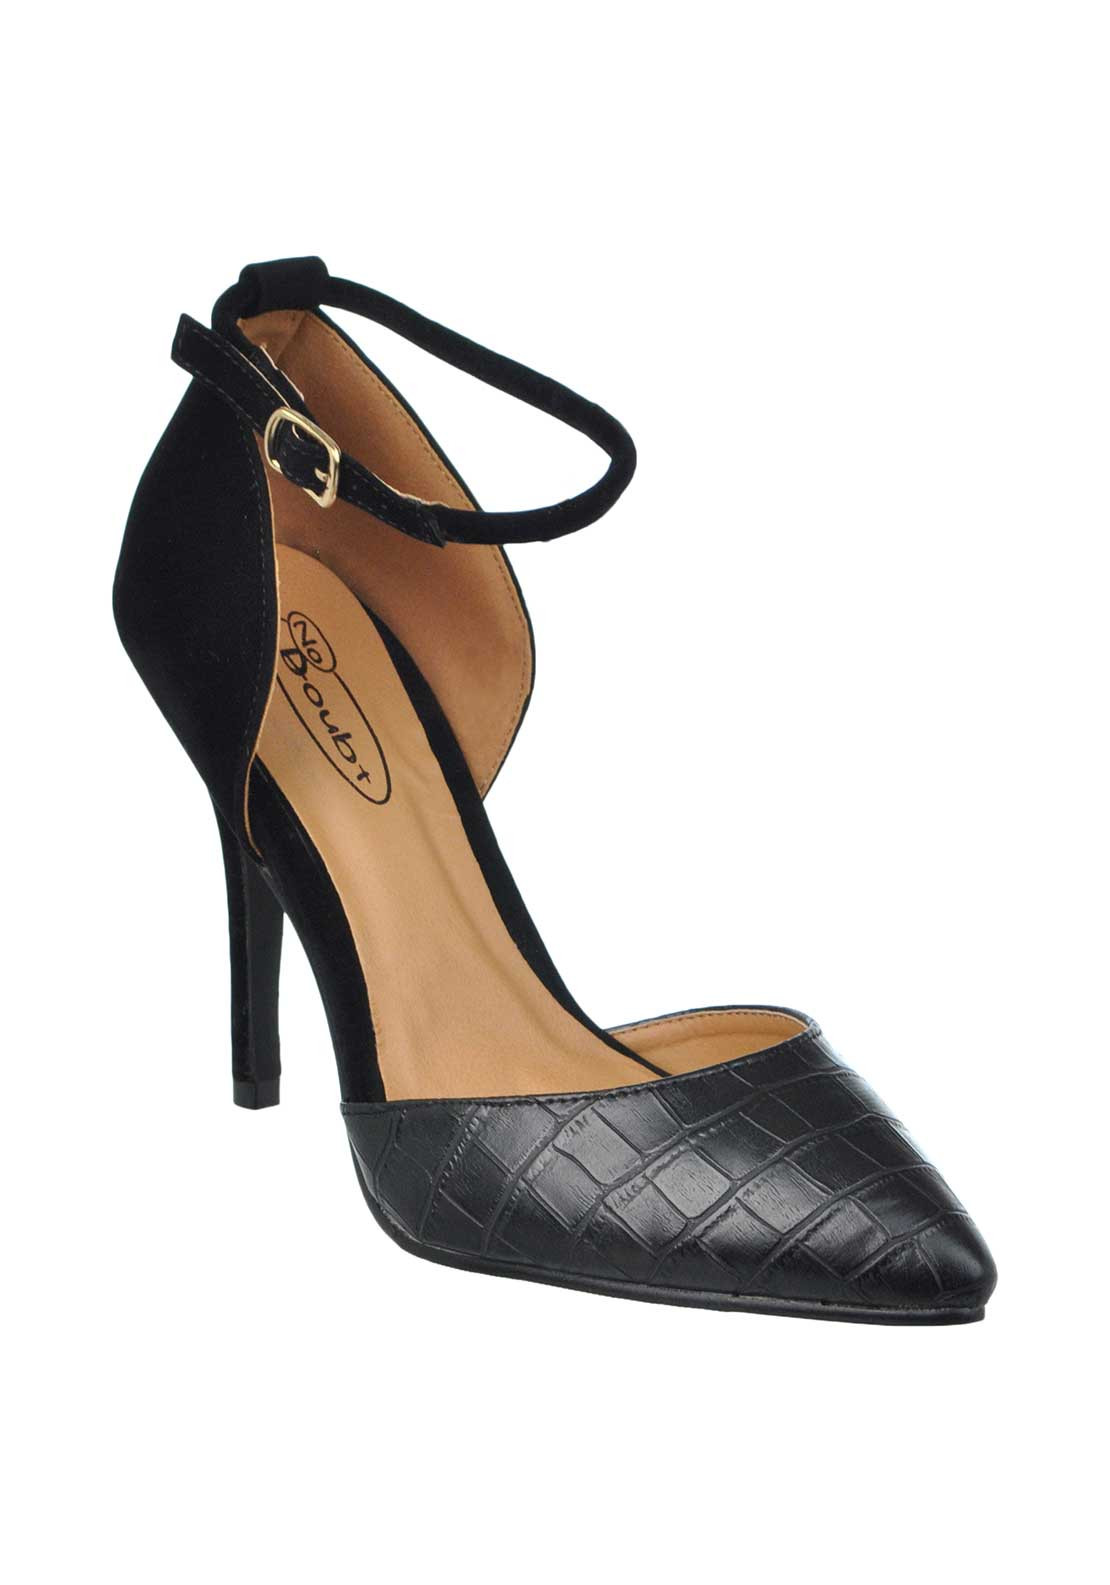 No Doubt Reptile Print Pointed Toe Heeled Ankle Strap Shoes, Black